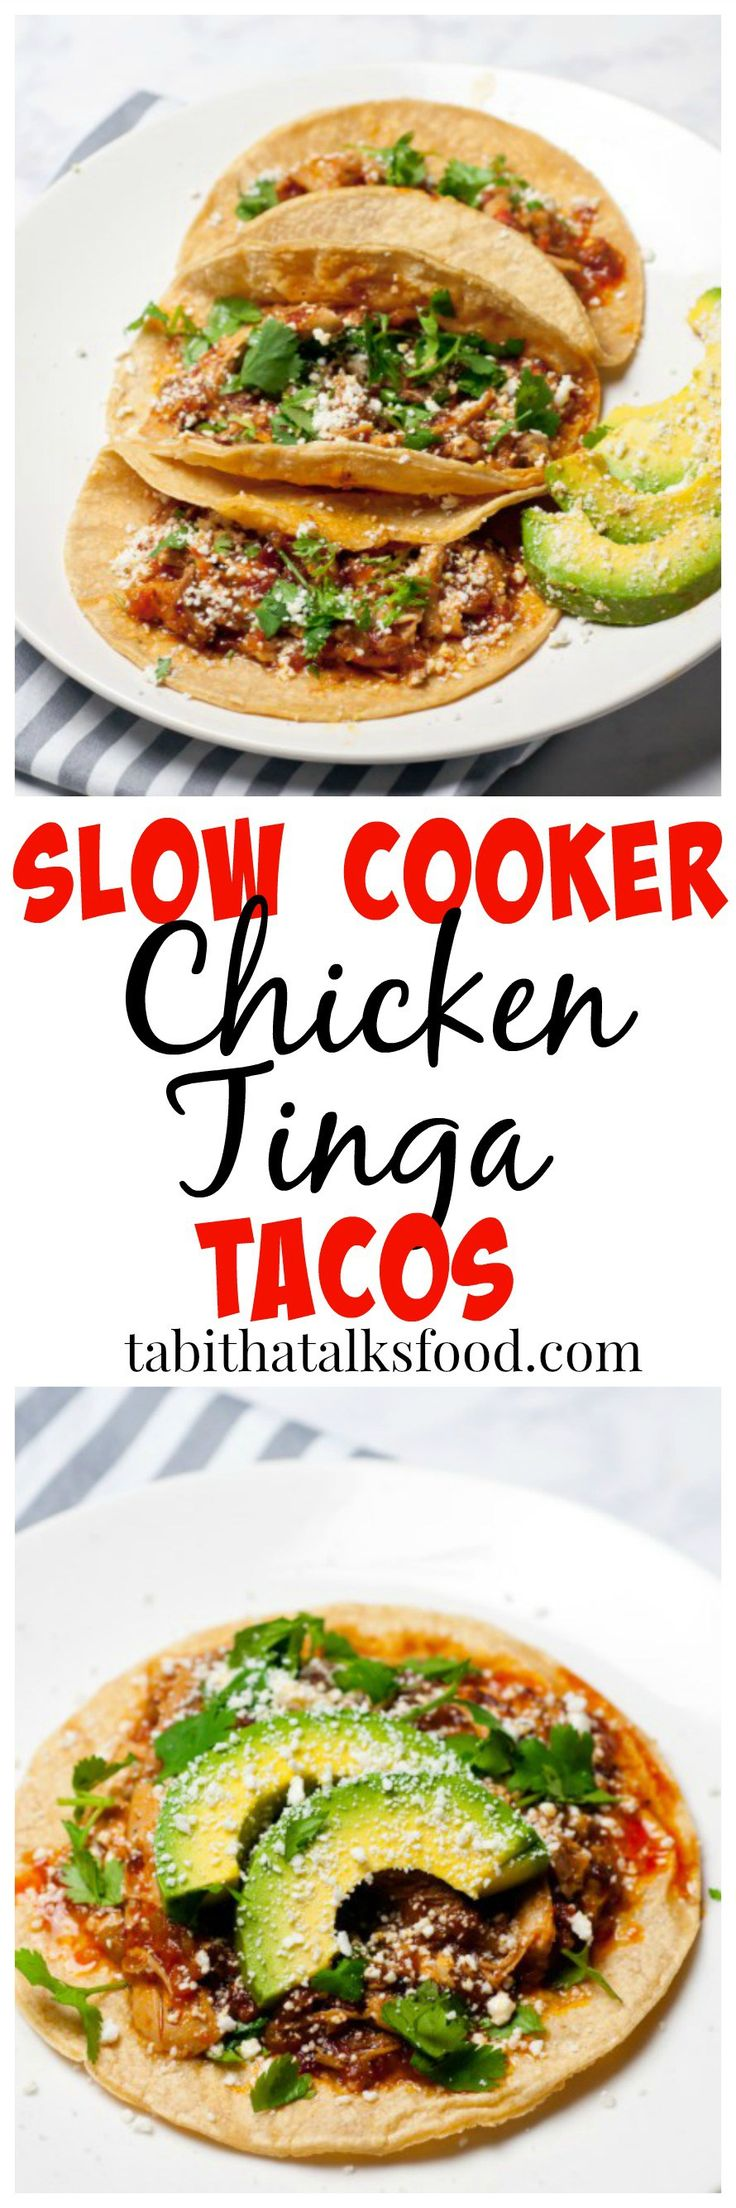 All you need to prepare these chicken tinga tacos is about 5 minutes! Let the slow cooker do the rest of the work for you!